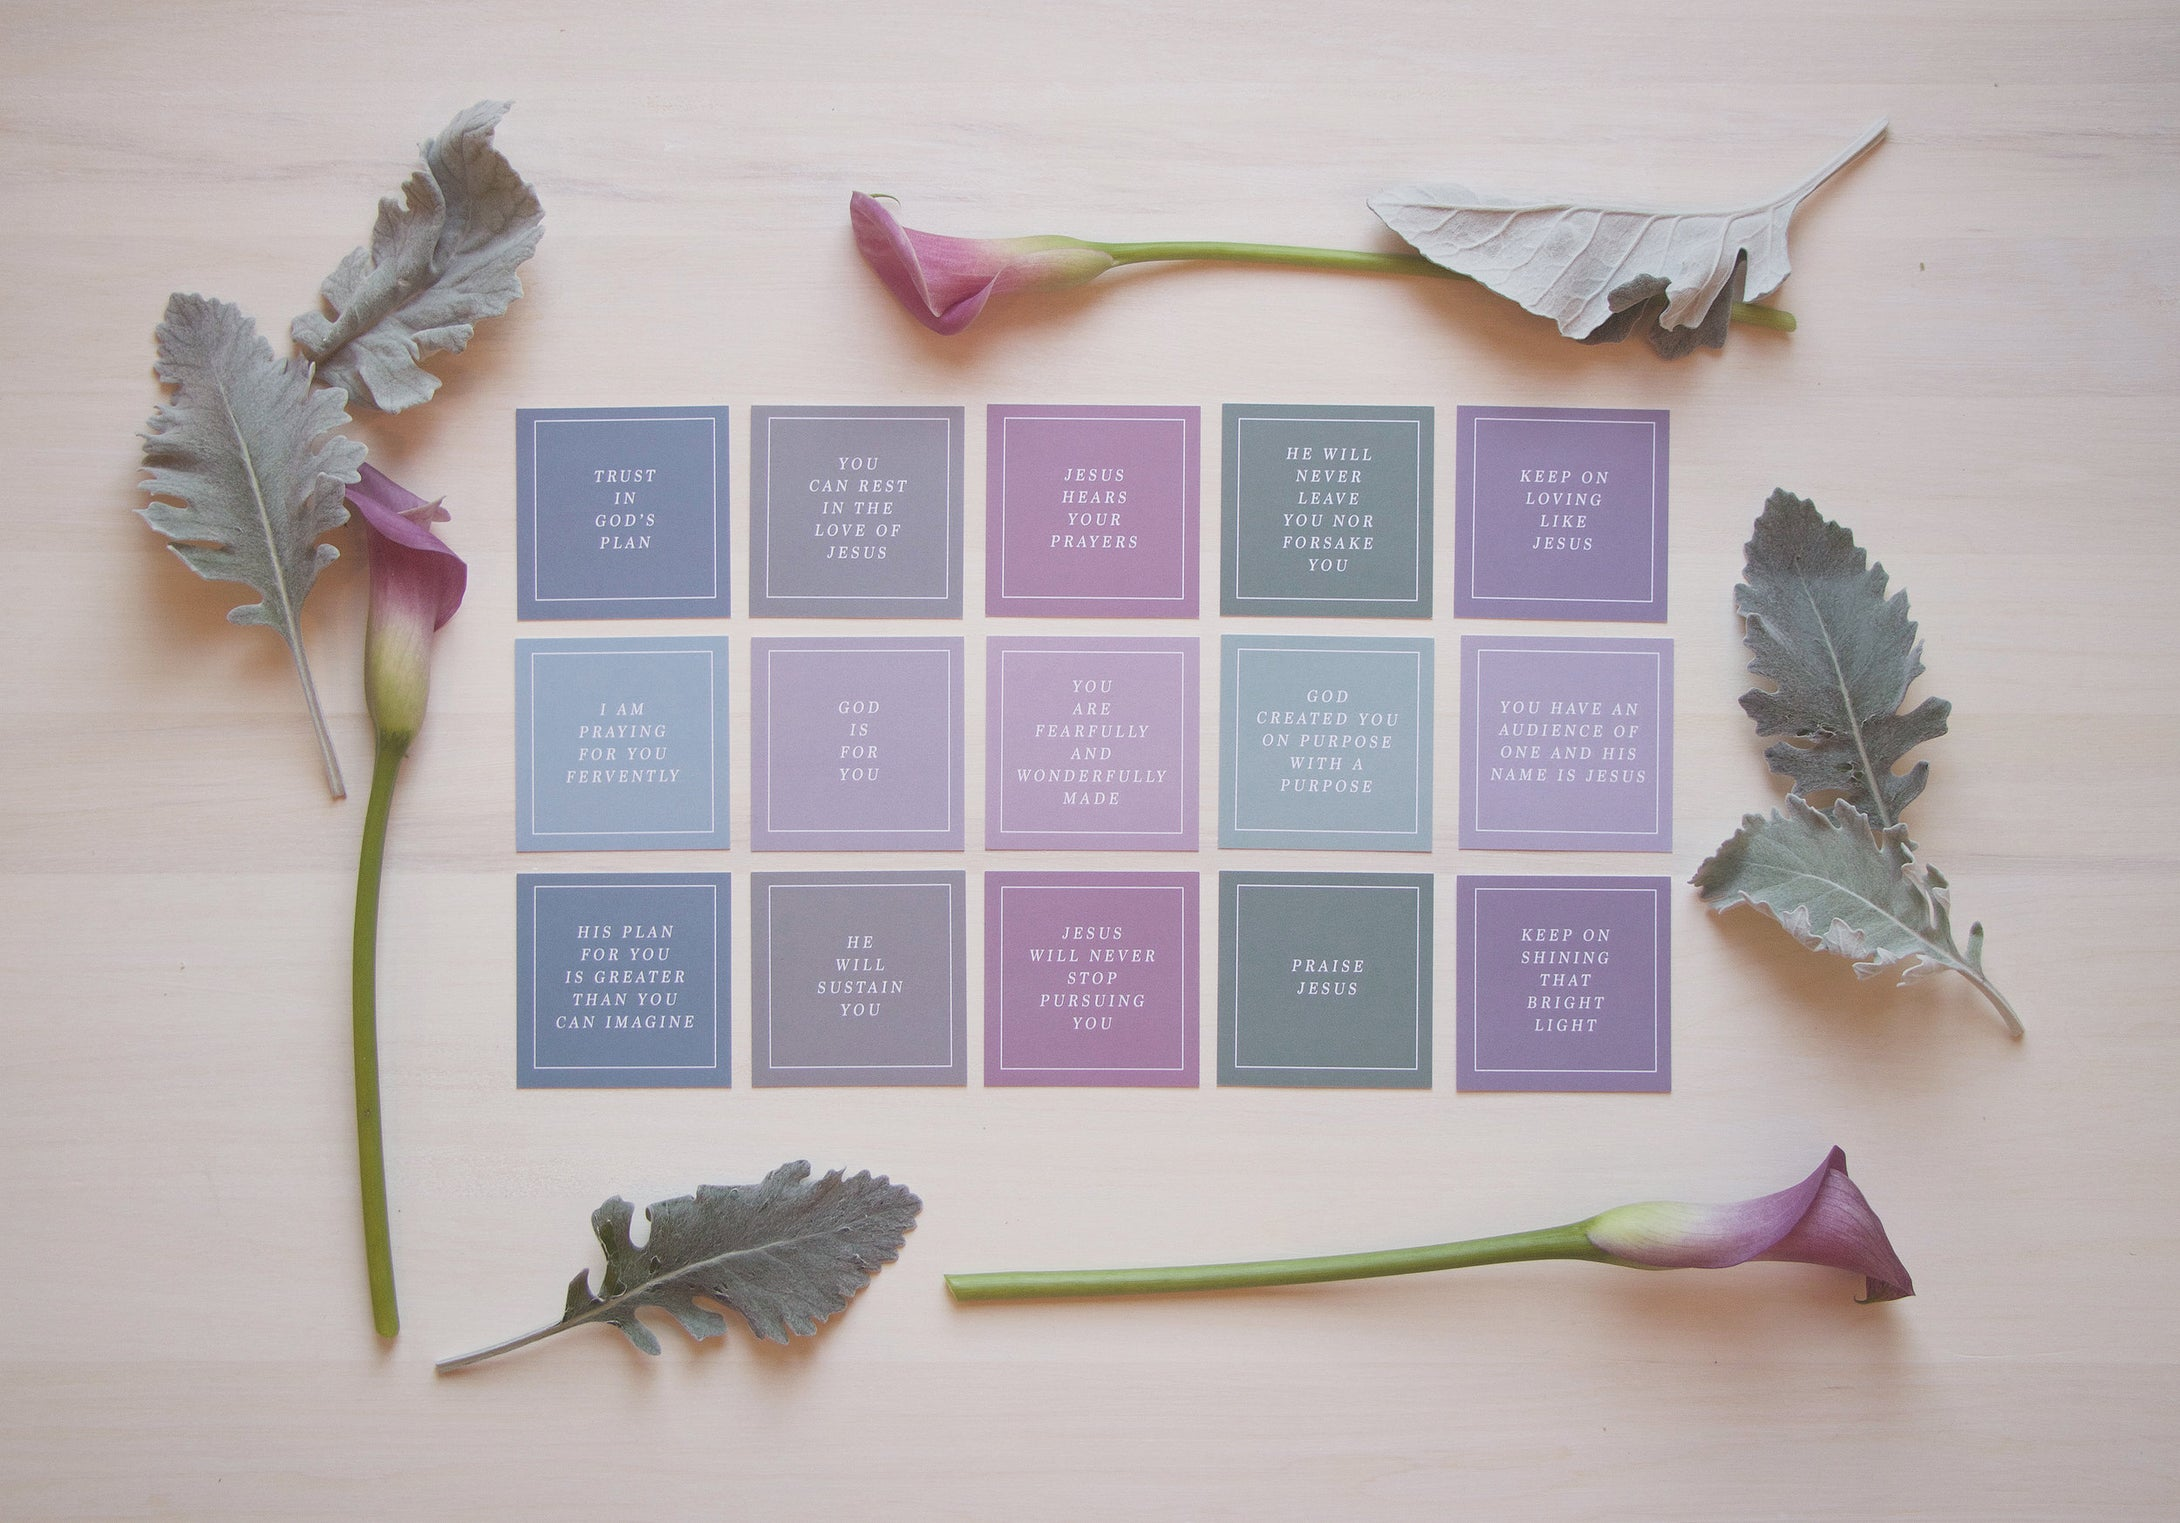 Mini Truths, Spiritual Encouragement Set